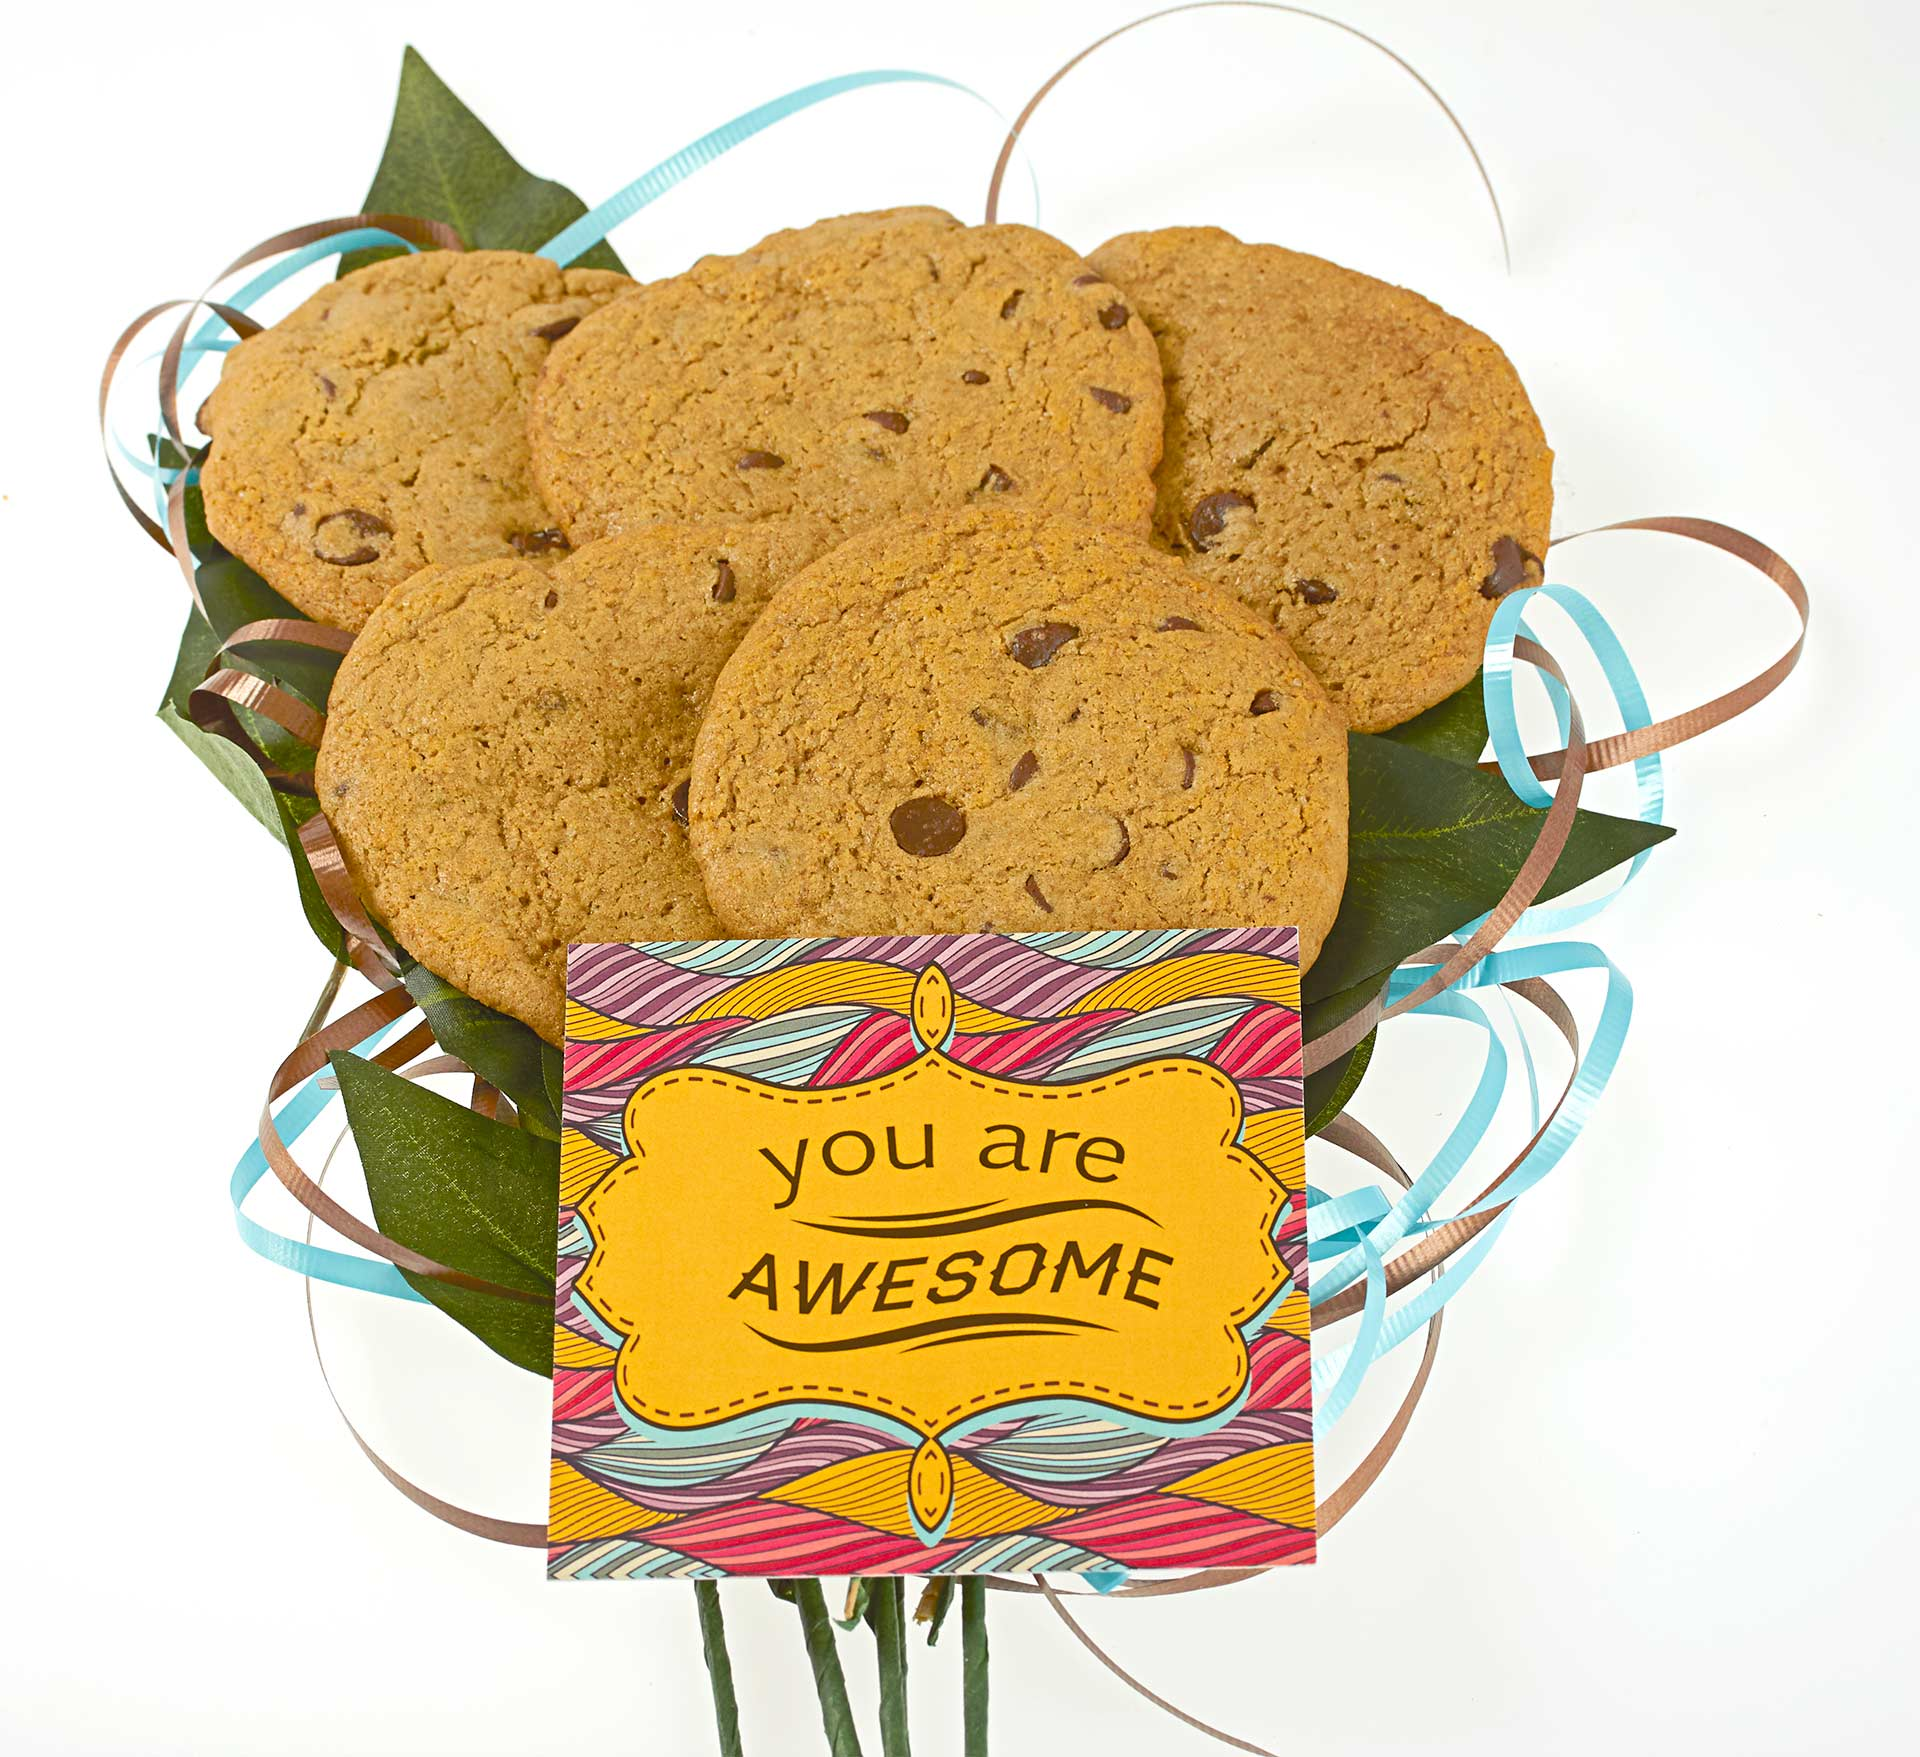 You are awesome vegan gluten-free cookie bouquet